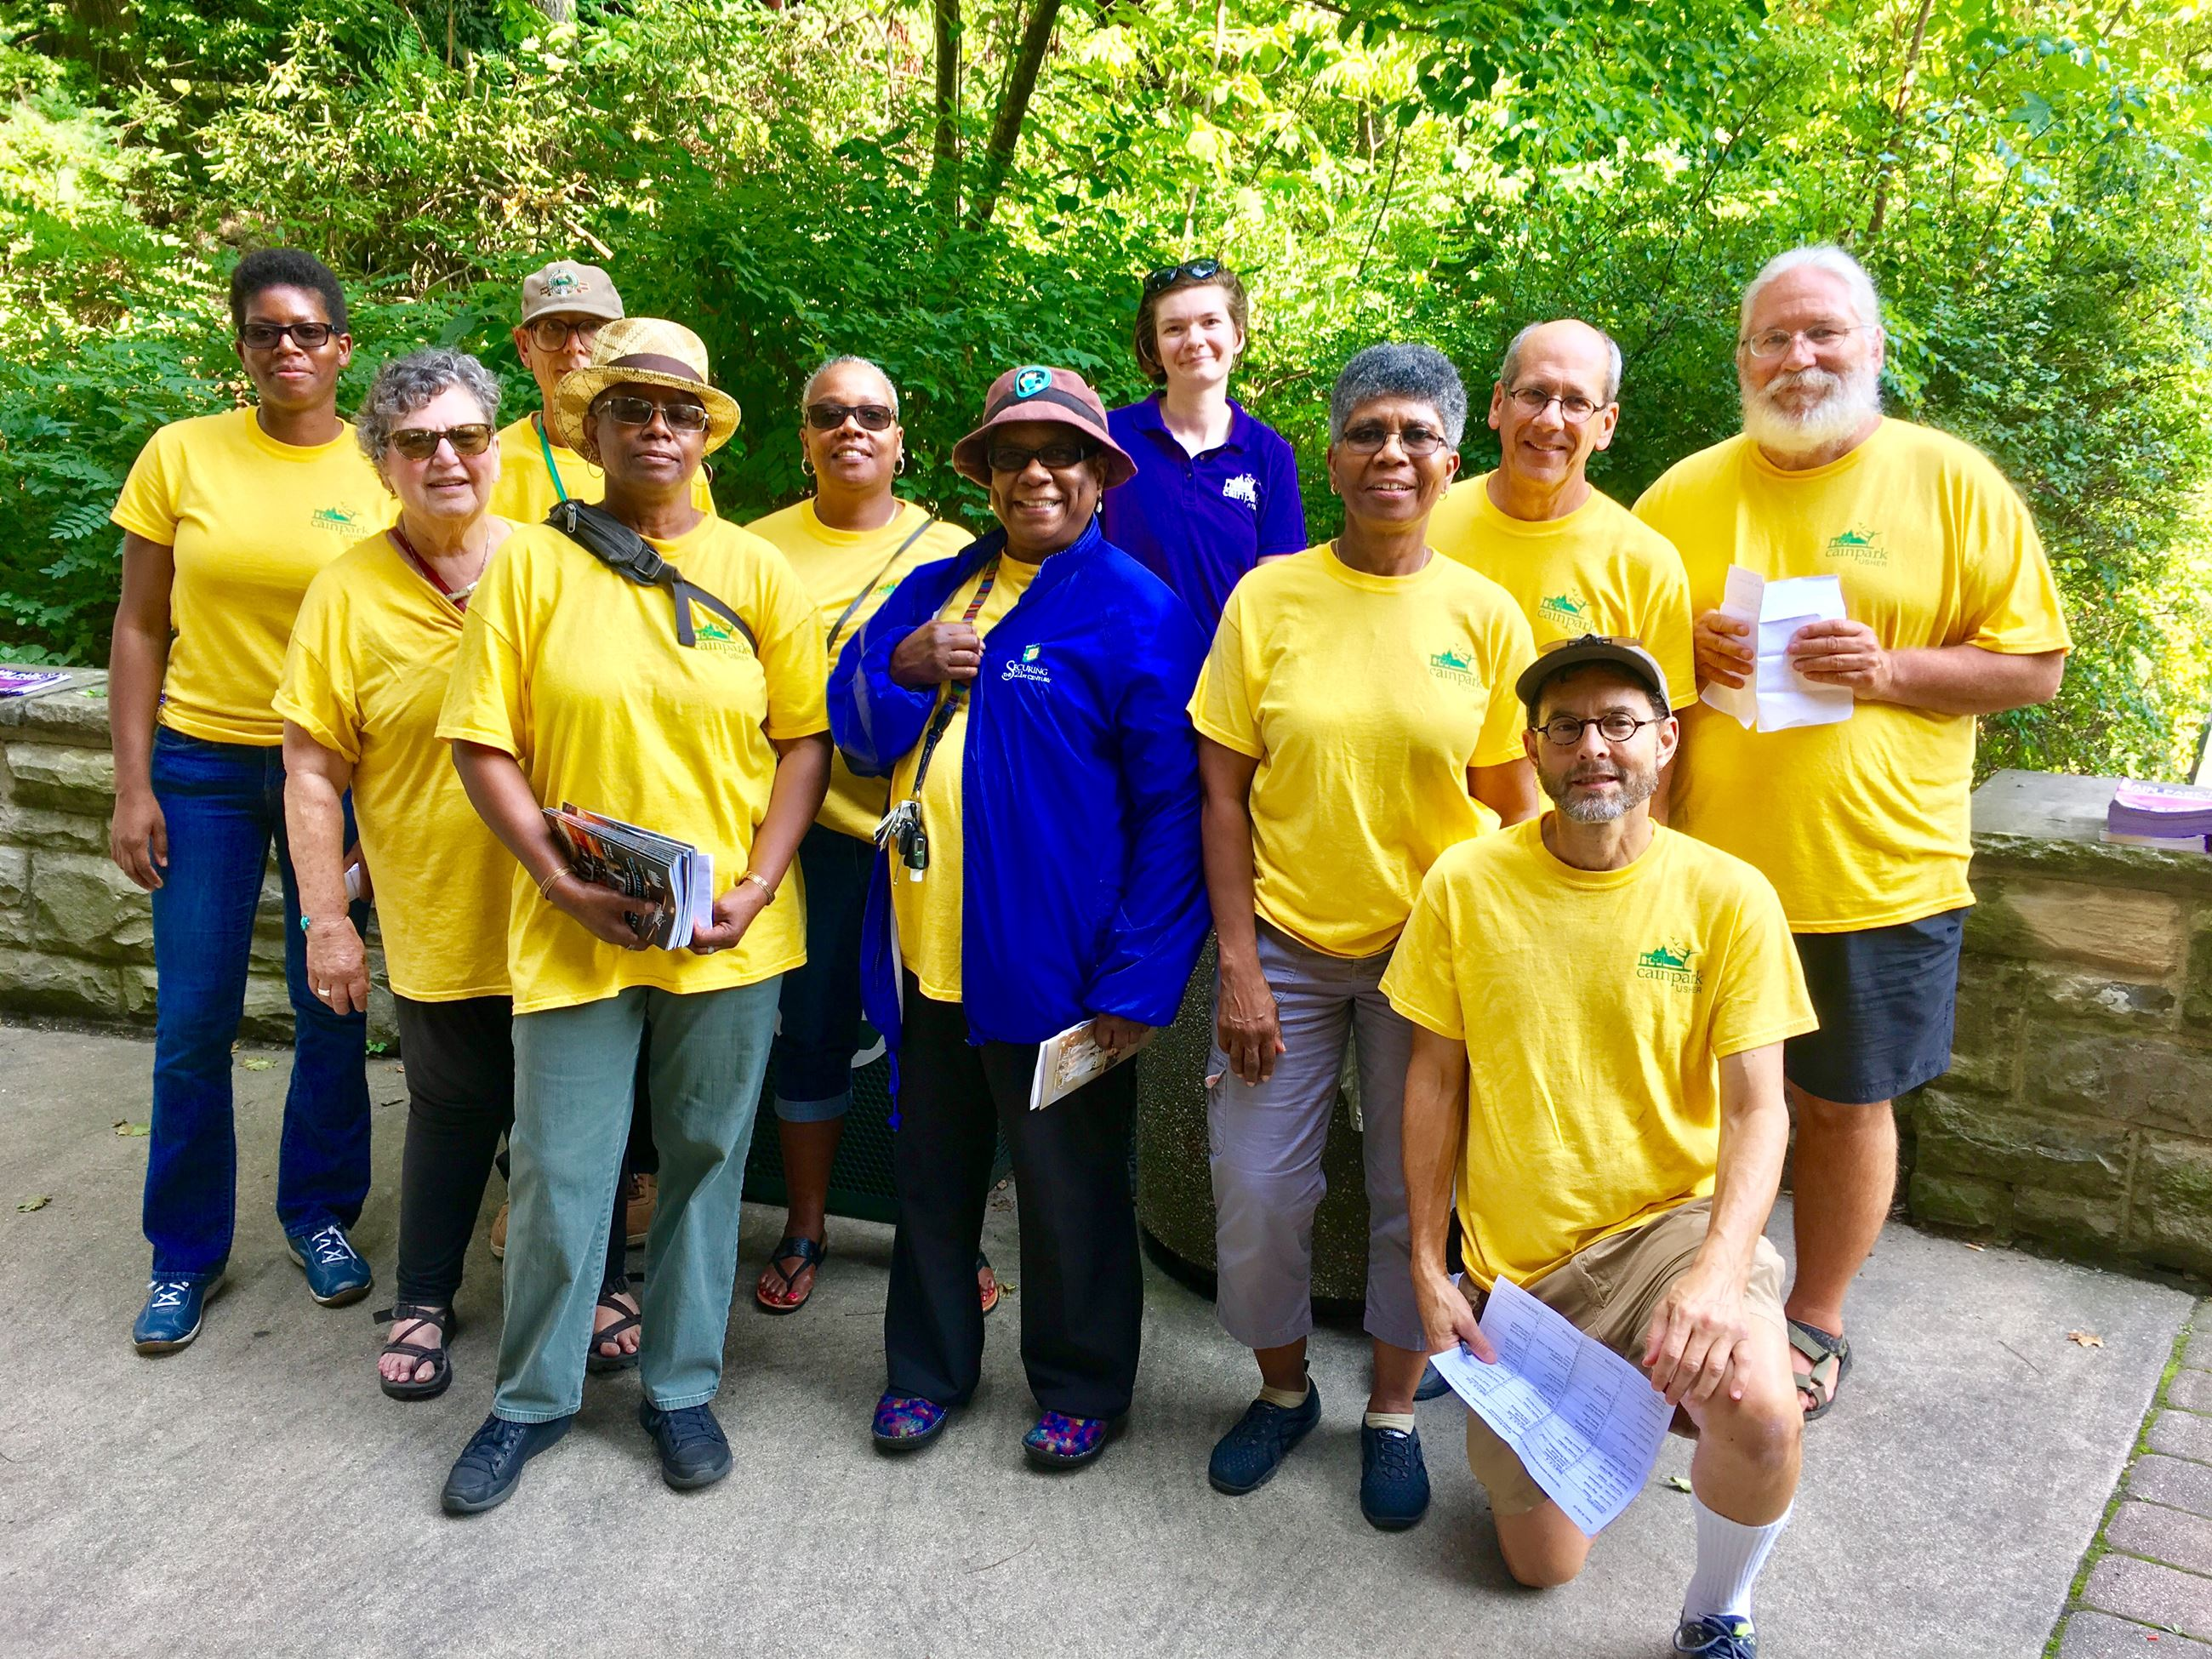 Image of Cain Park volunteers